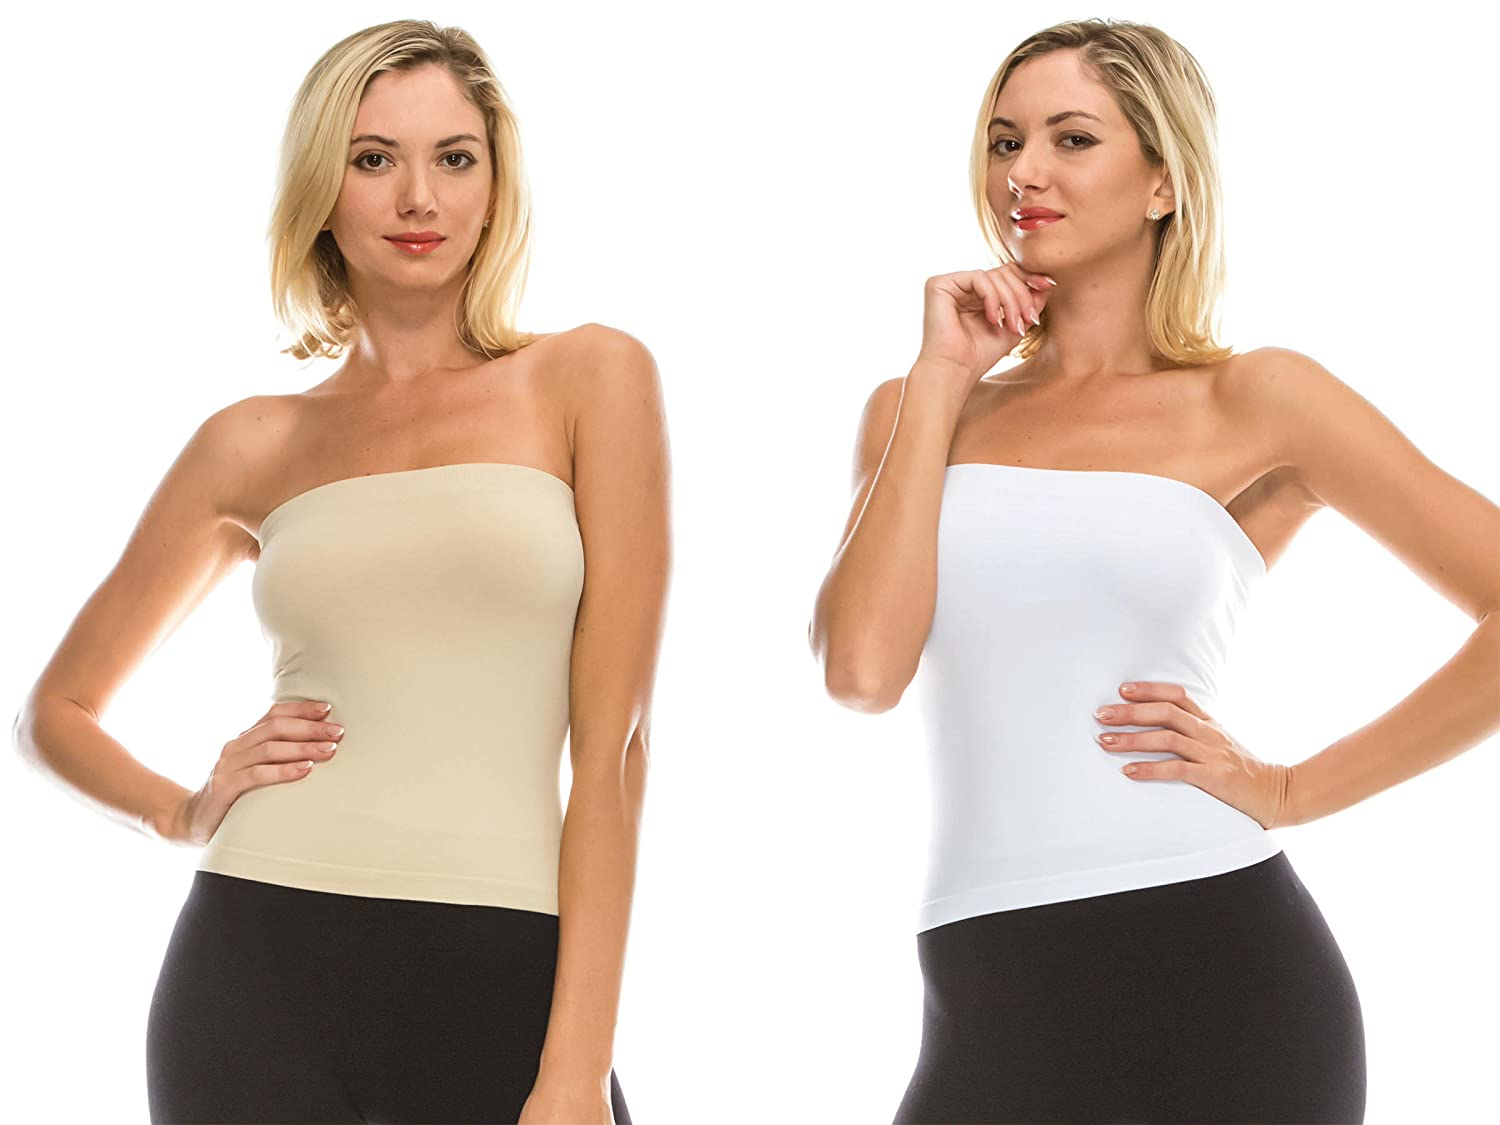 Kurve Medium Length Tube Top with Built-in Shelf Bra -Made in USA